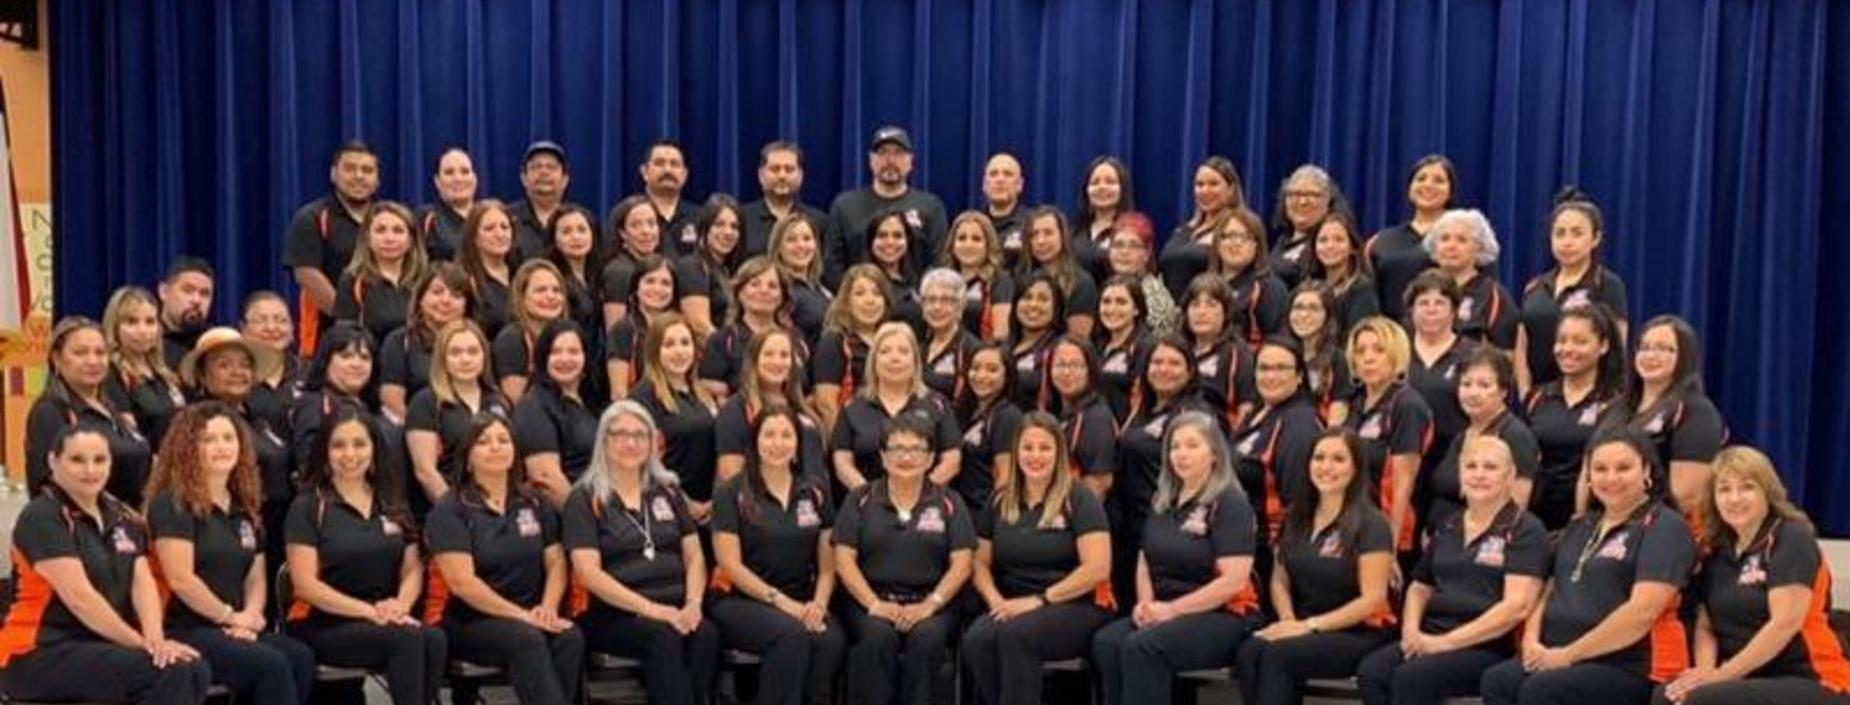 Staff Group Picture